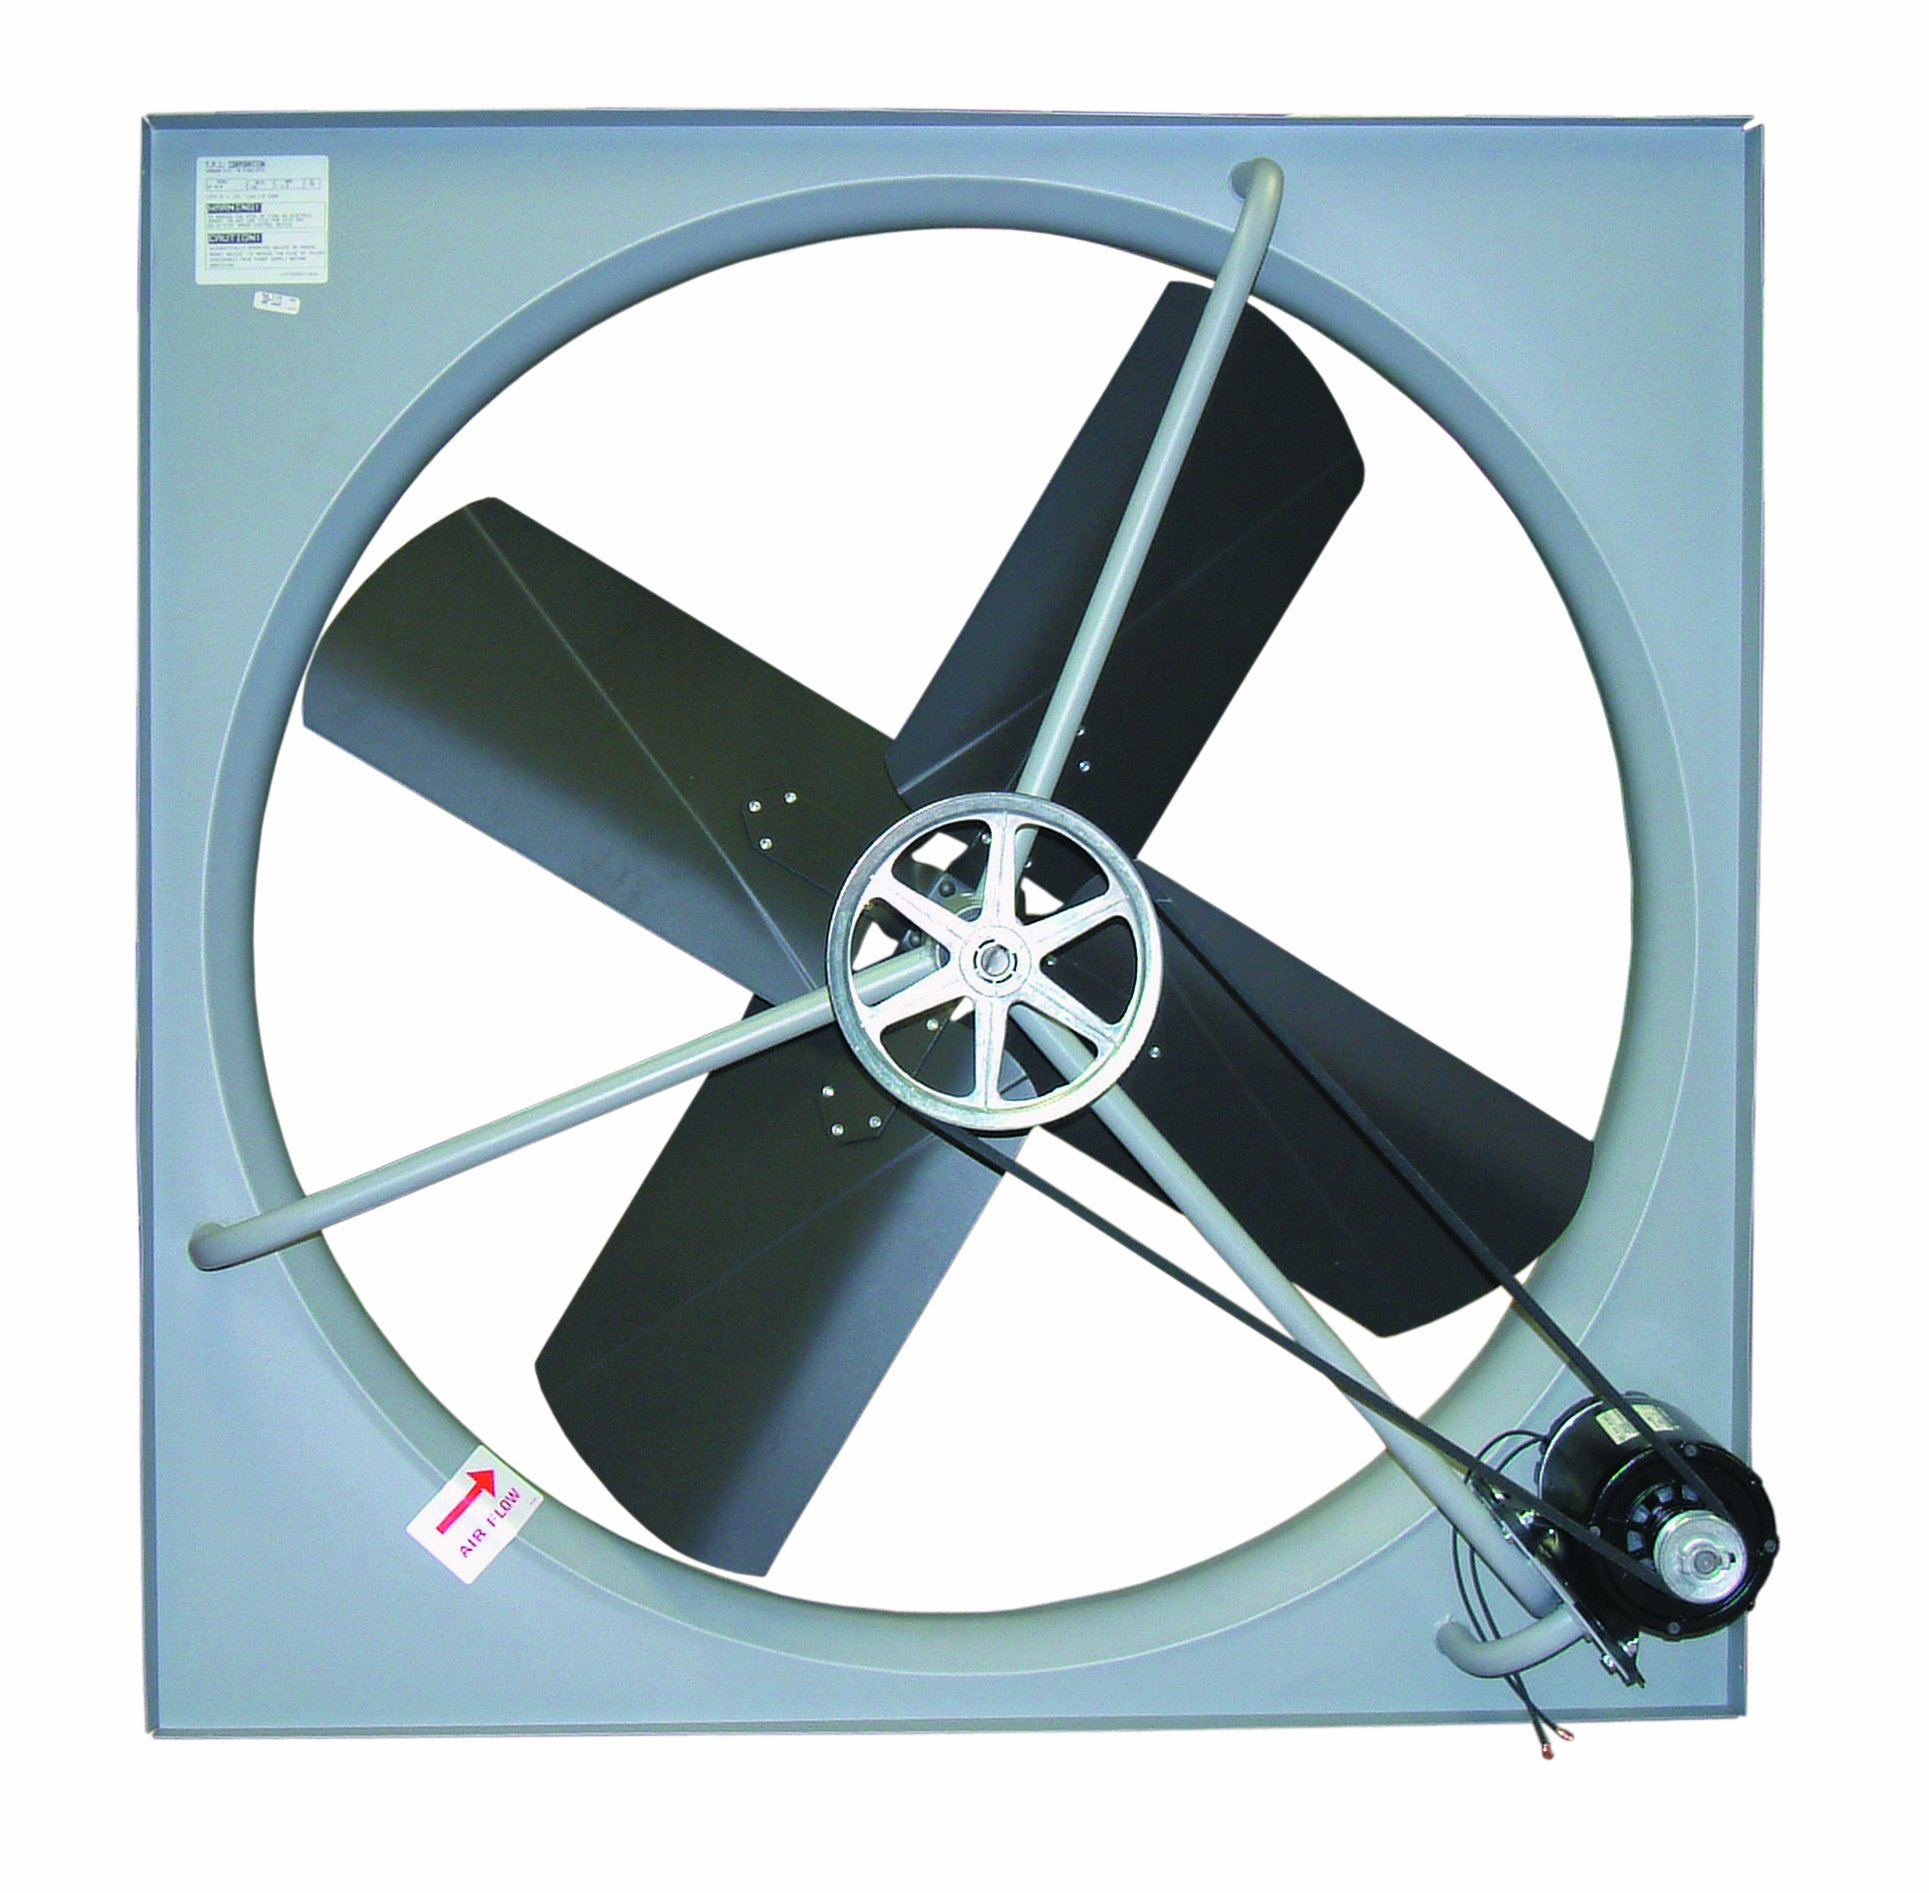 TPI Corporation CE-24-B Commercial Exhaust Fan – Single Phase 24'' Diameter, 120 Volt Industrial Fan for Ventilating Interiors. Bathroom Vent Fan by TPI